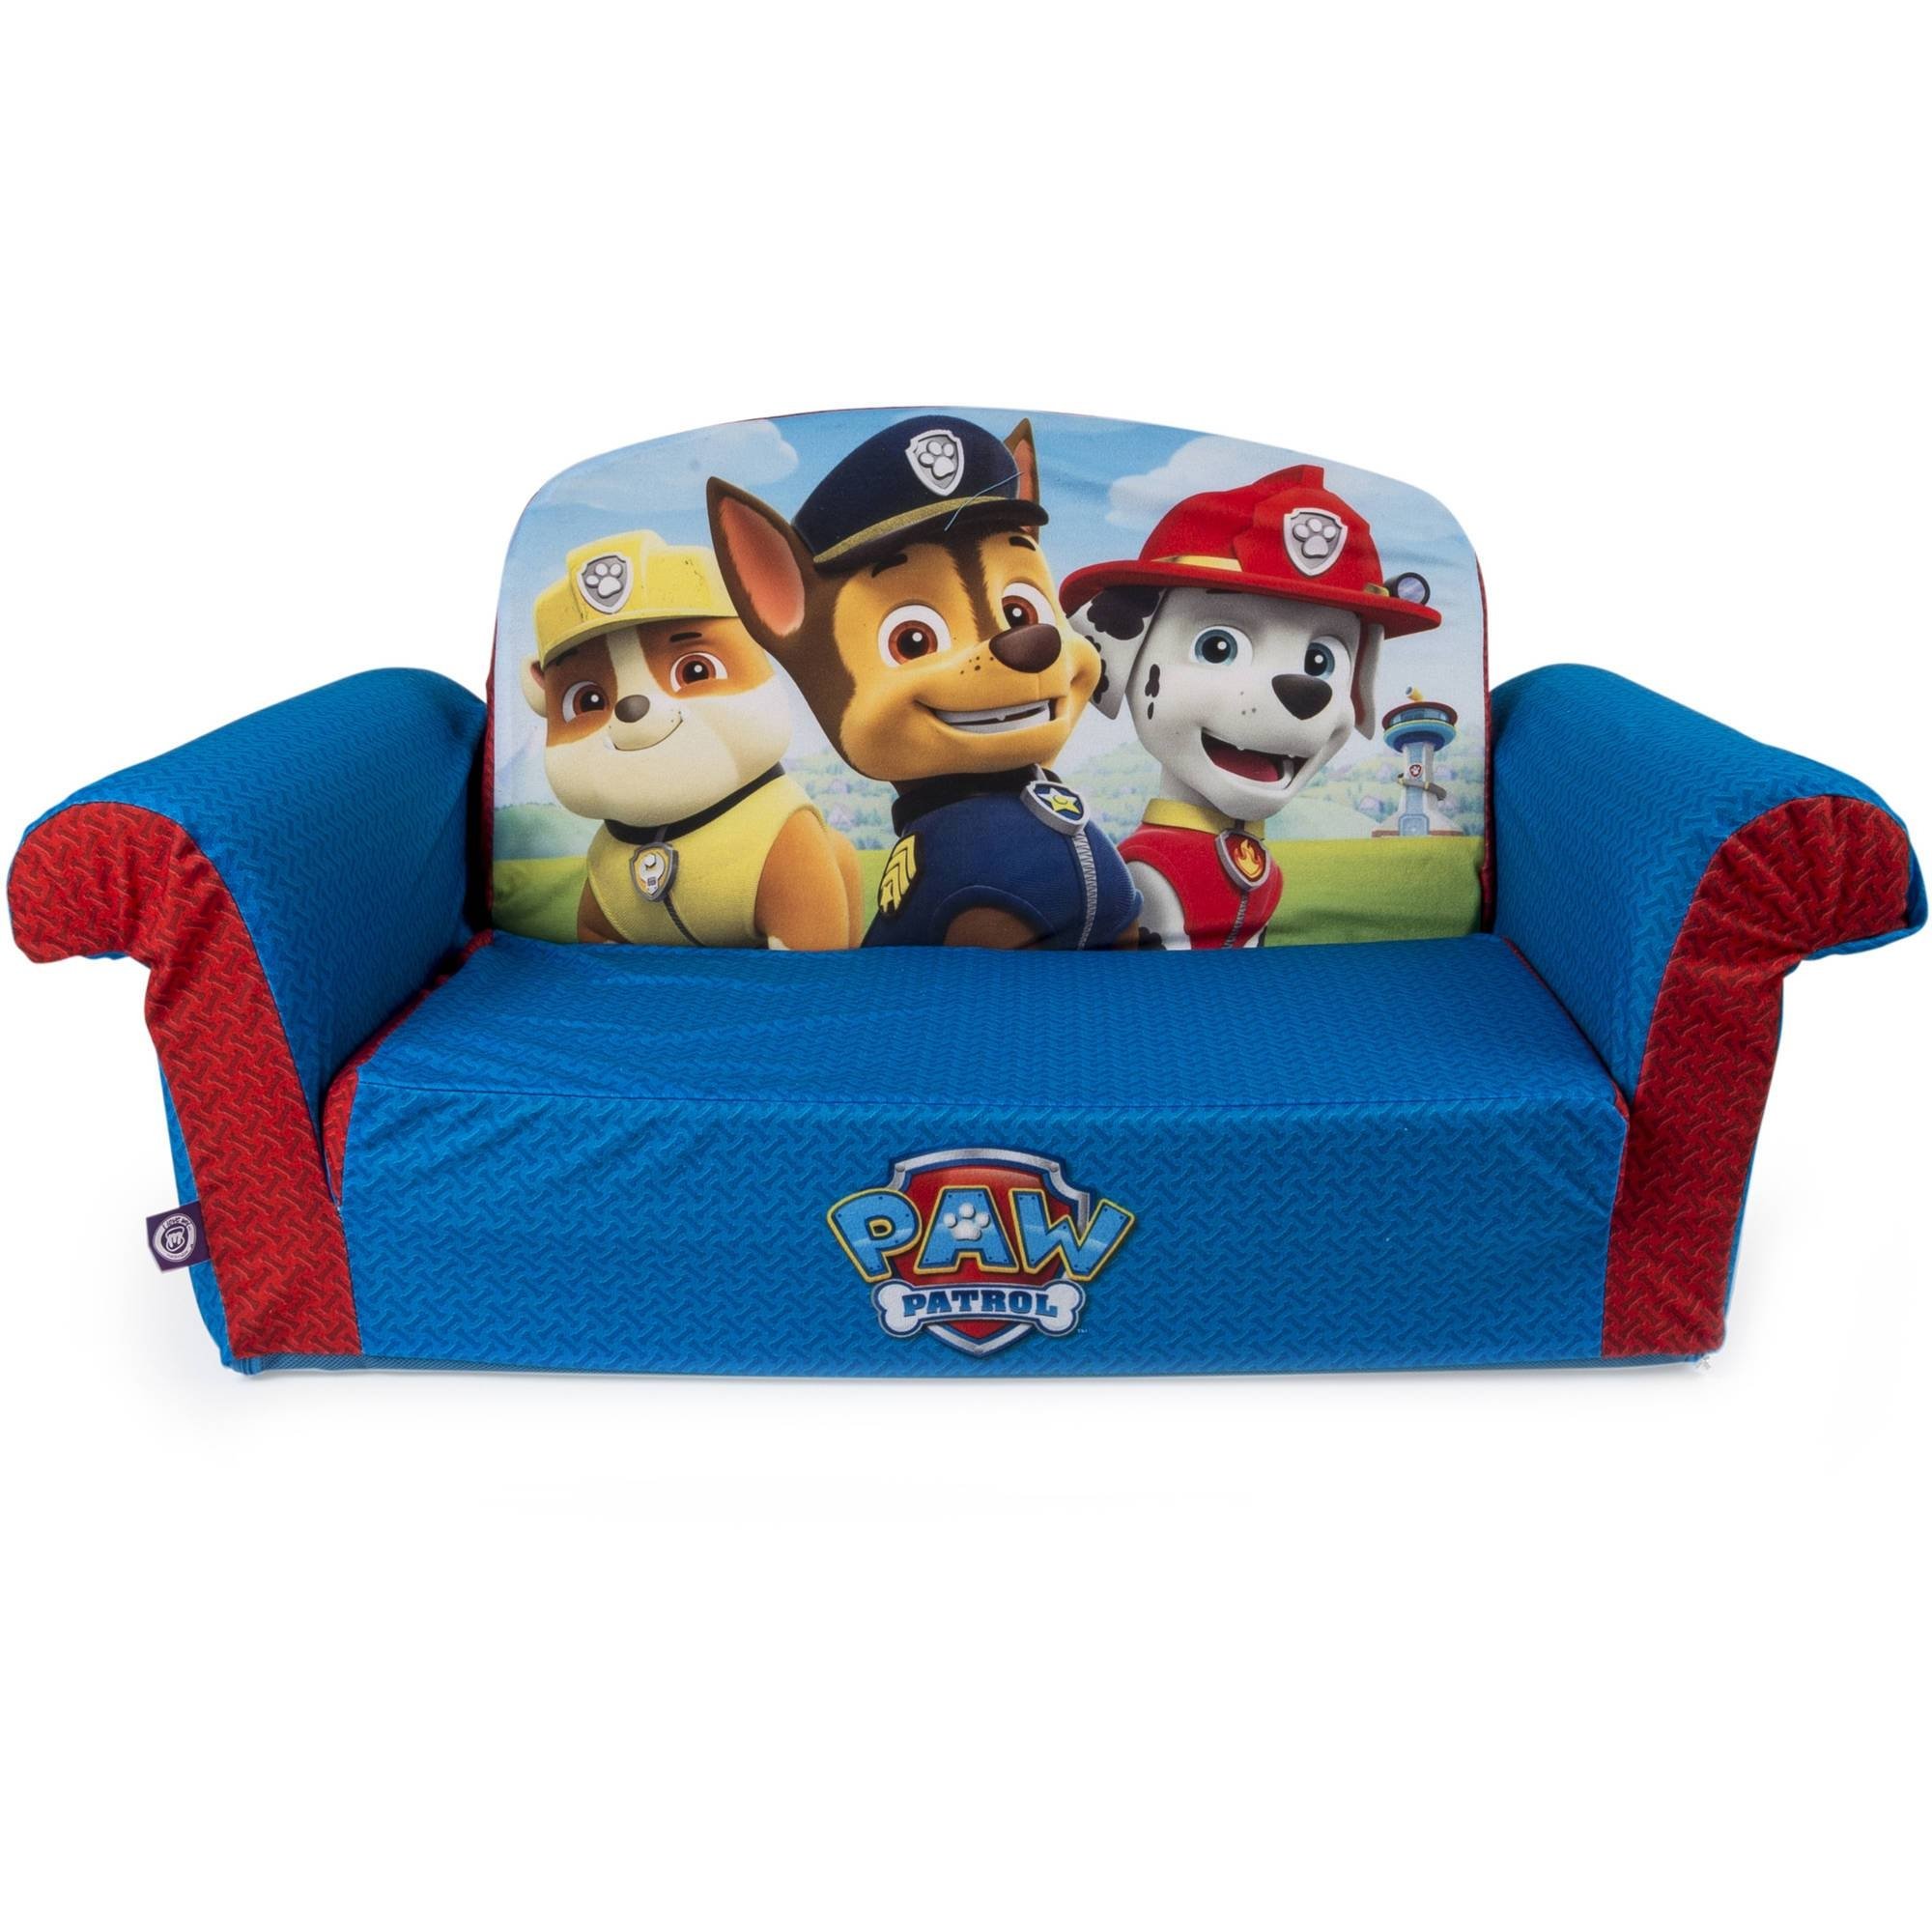 Marshmallow Furniture, Children's 2 In 1 Flip Open Foam Sofa inside Toddler Sofa Chairs (Image 8 of 15)